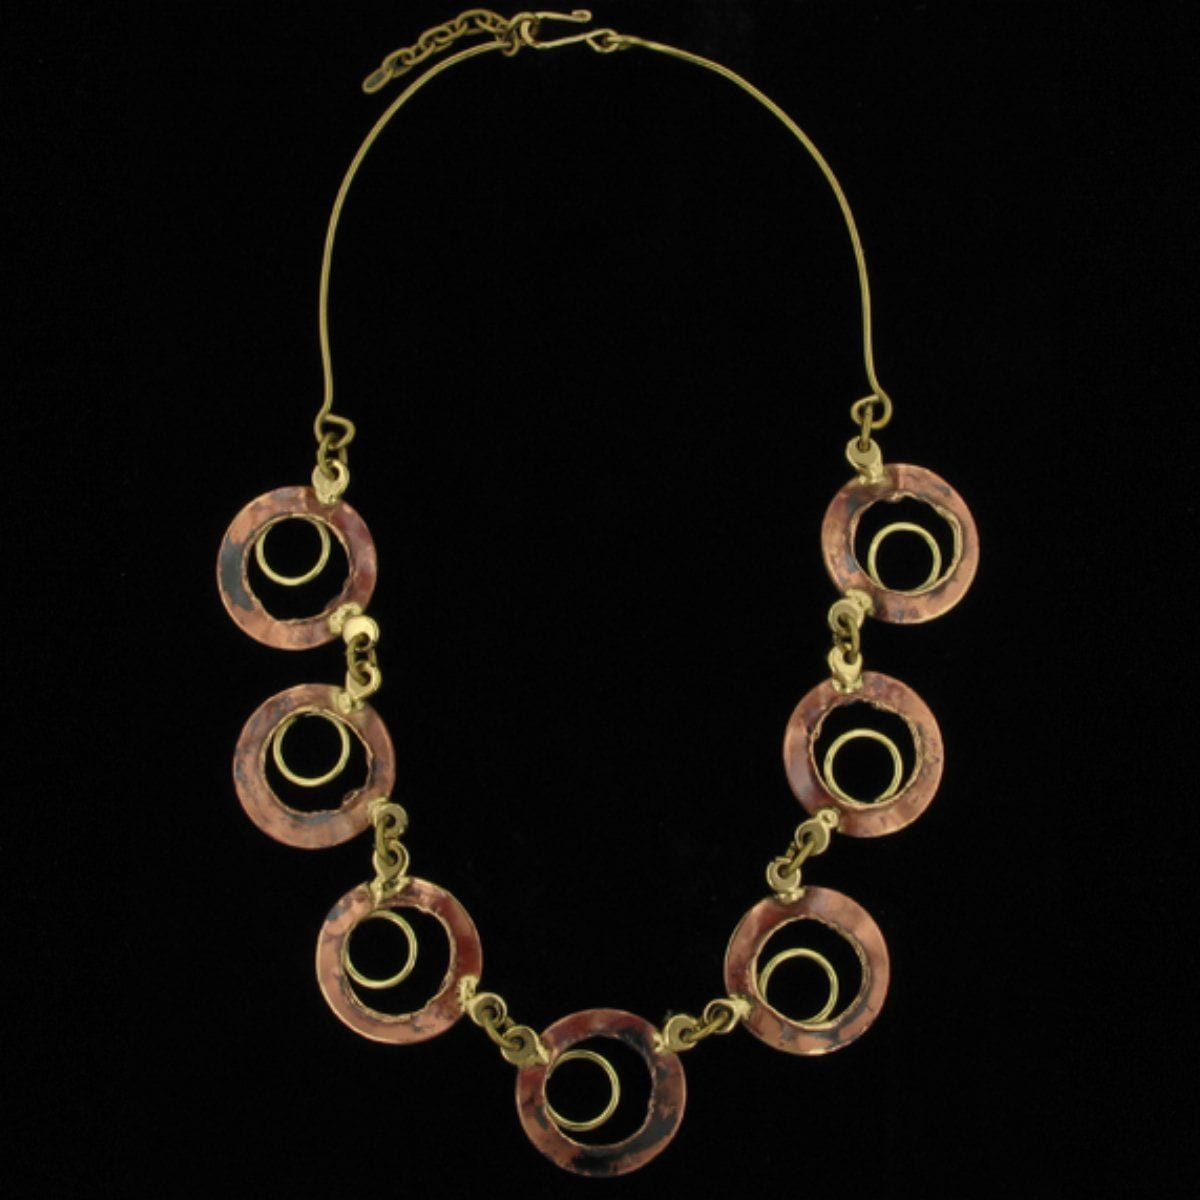 C300a Necklace - Creative Copper